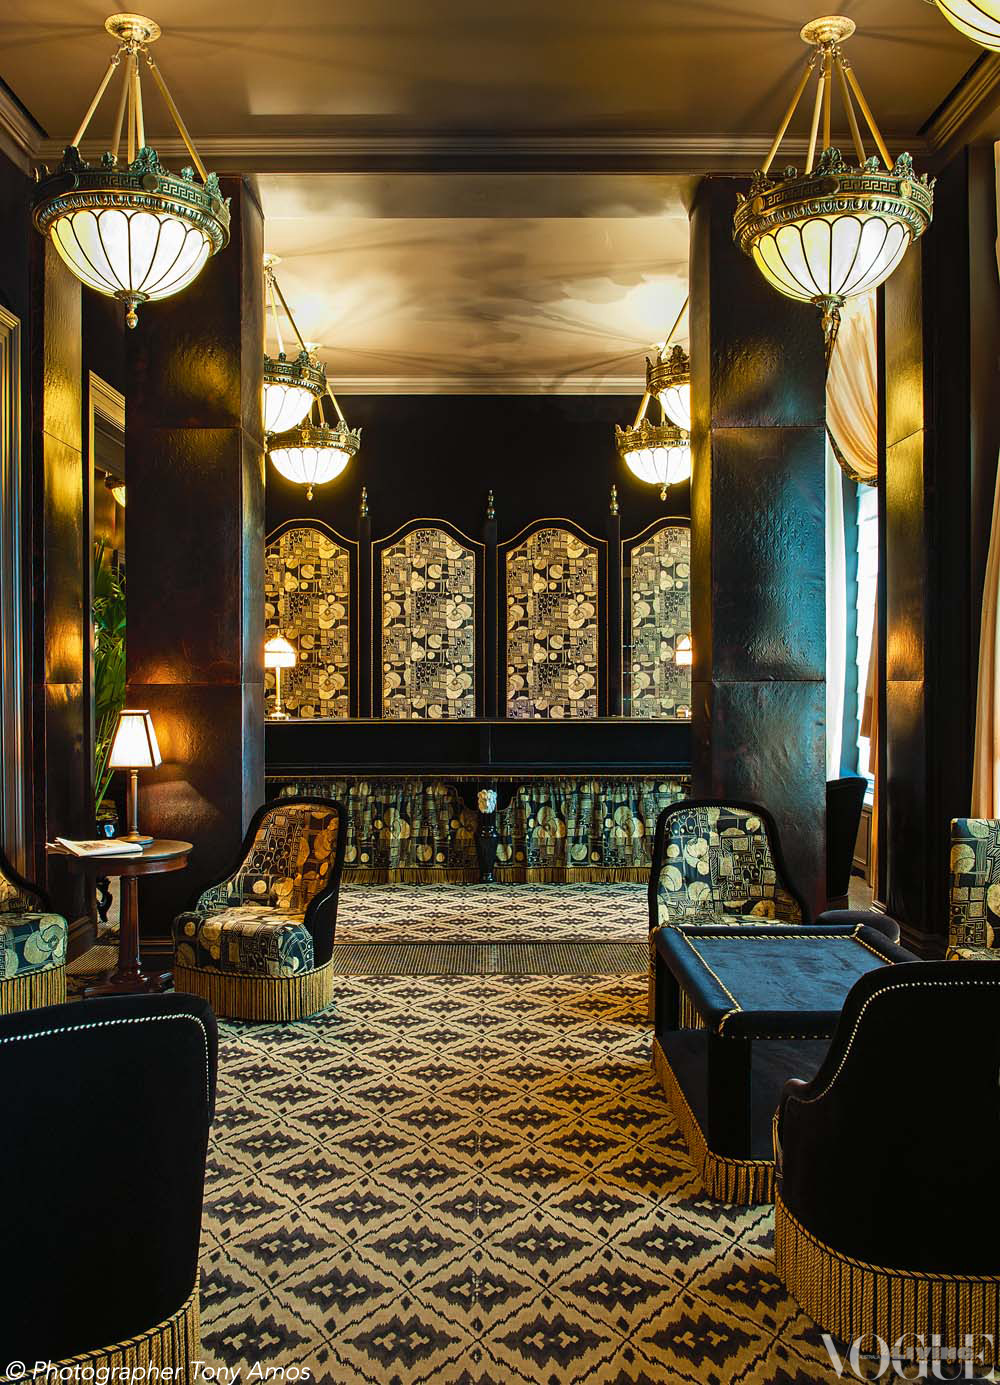 voguelivingmagazine:  Manhattan's opulent, Paris-inspired hotel NoMad, which occupies a 1903 Beaux Arts building, has a high-bohemian, nostalgic luxury rarely found in New York. From 'The Making of Midtown' a story on page 34 of Vogue Living April 2013.  Photograph by Tony Amos.